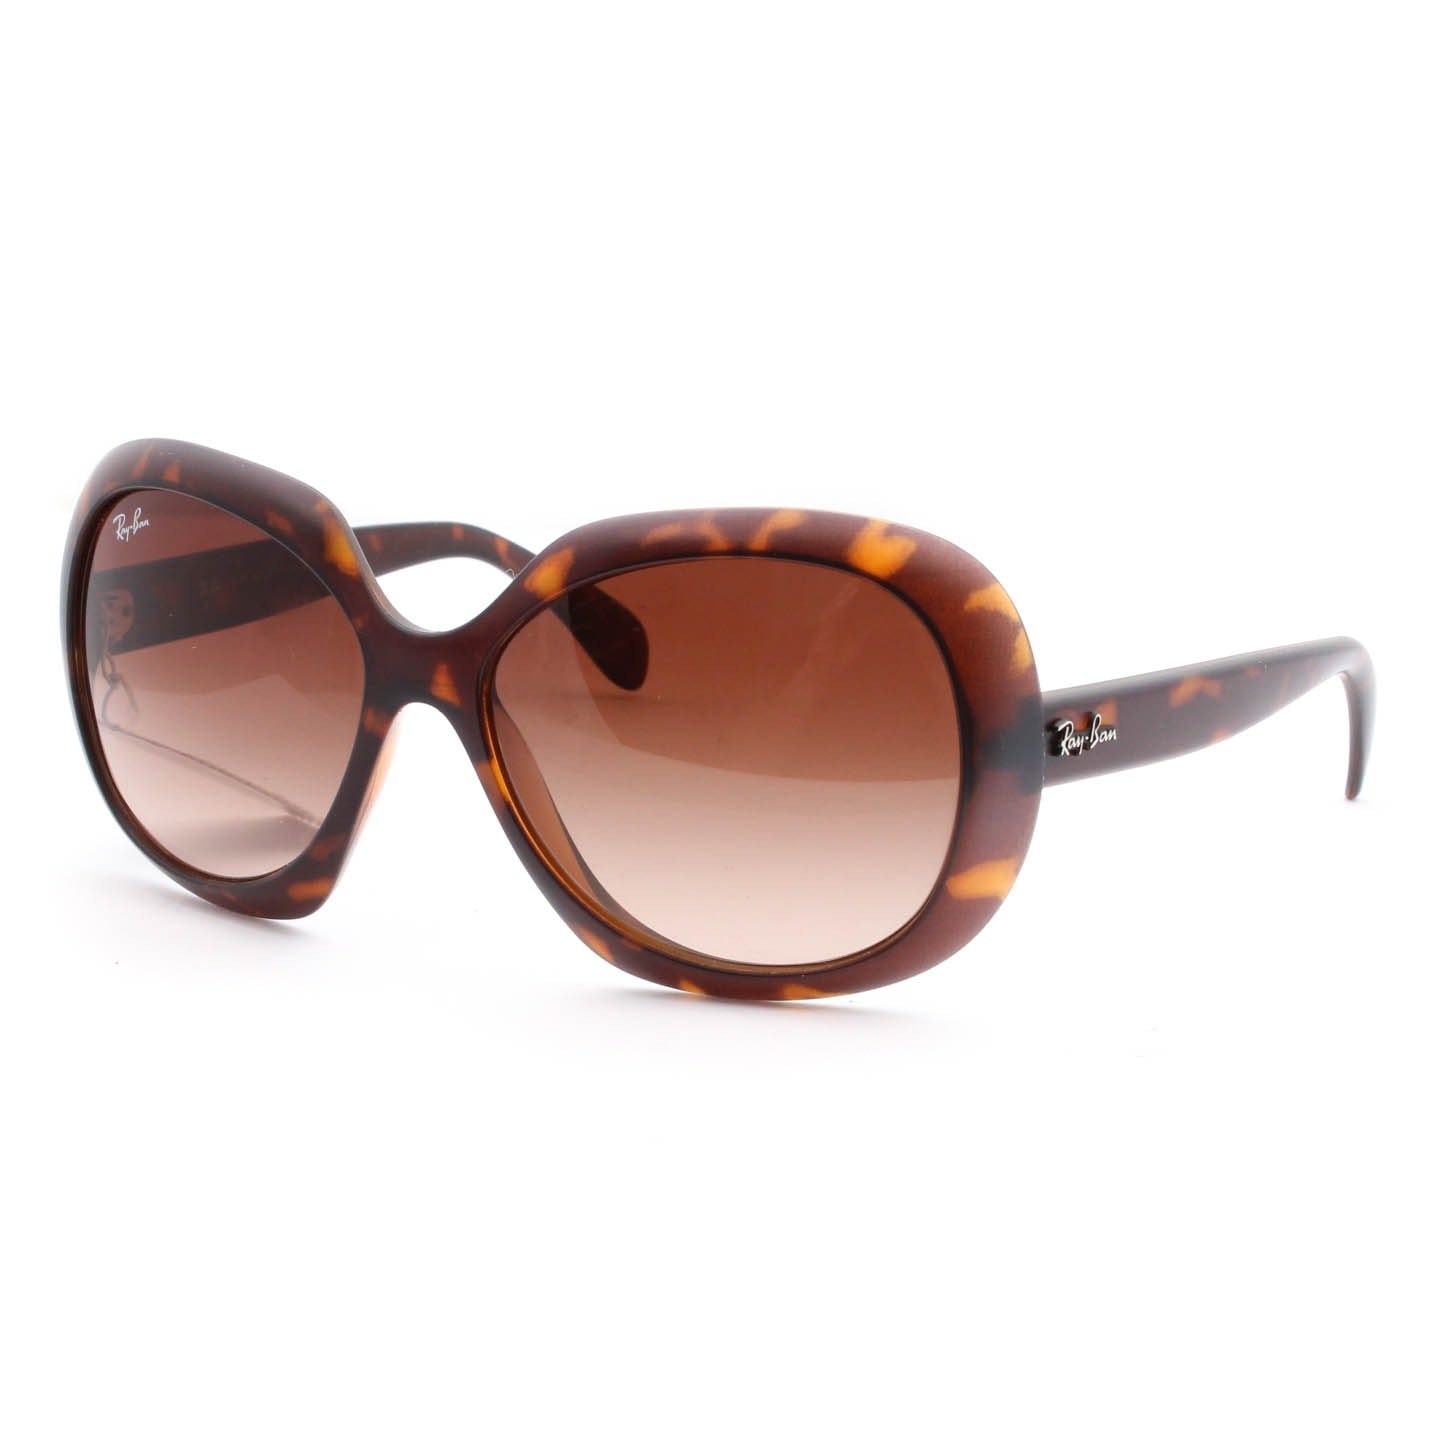 Ray-Ban RB4208 Tortoise Shell Style Sunglasses